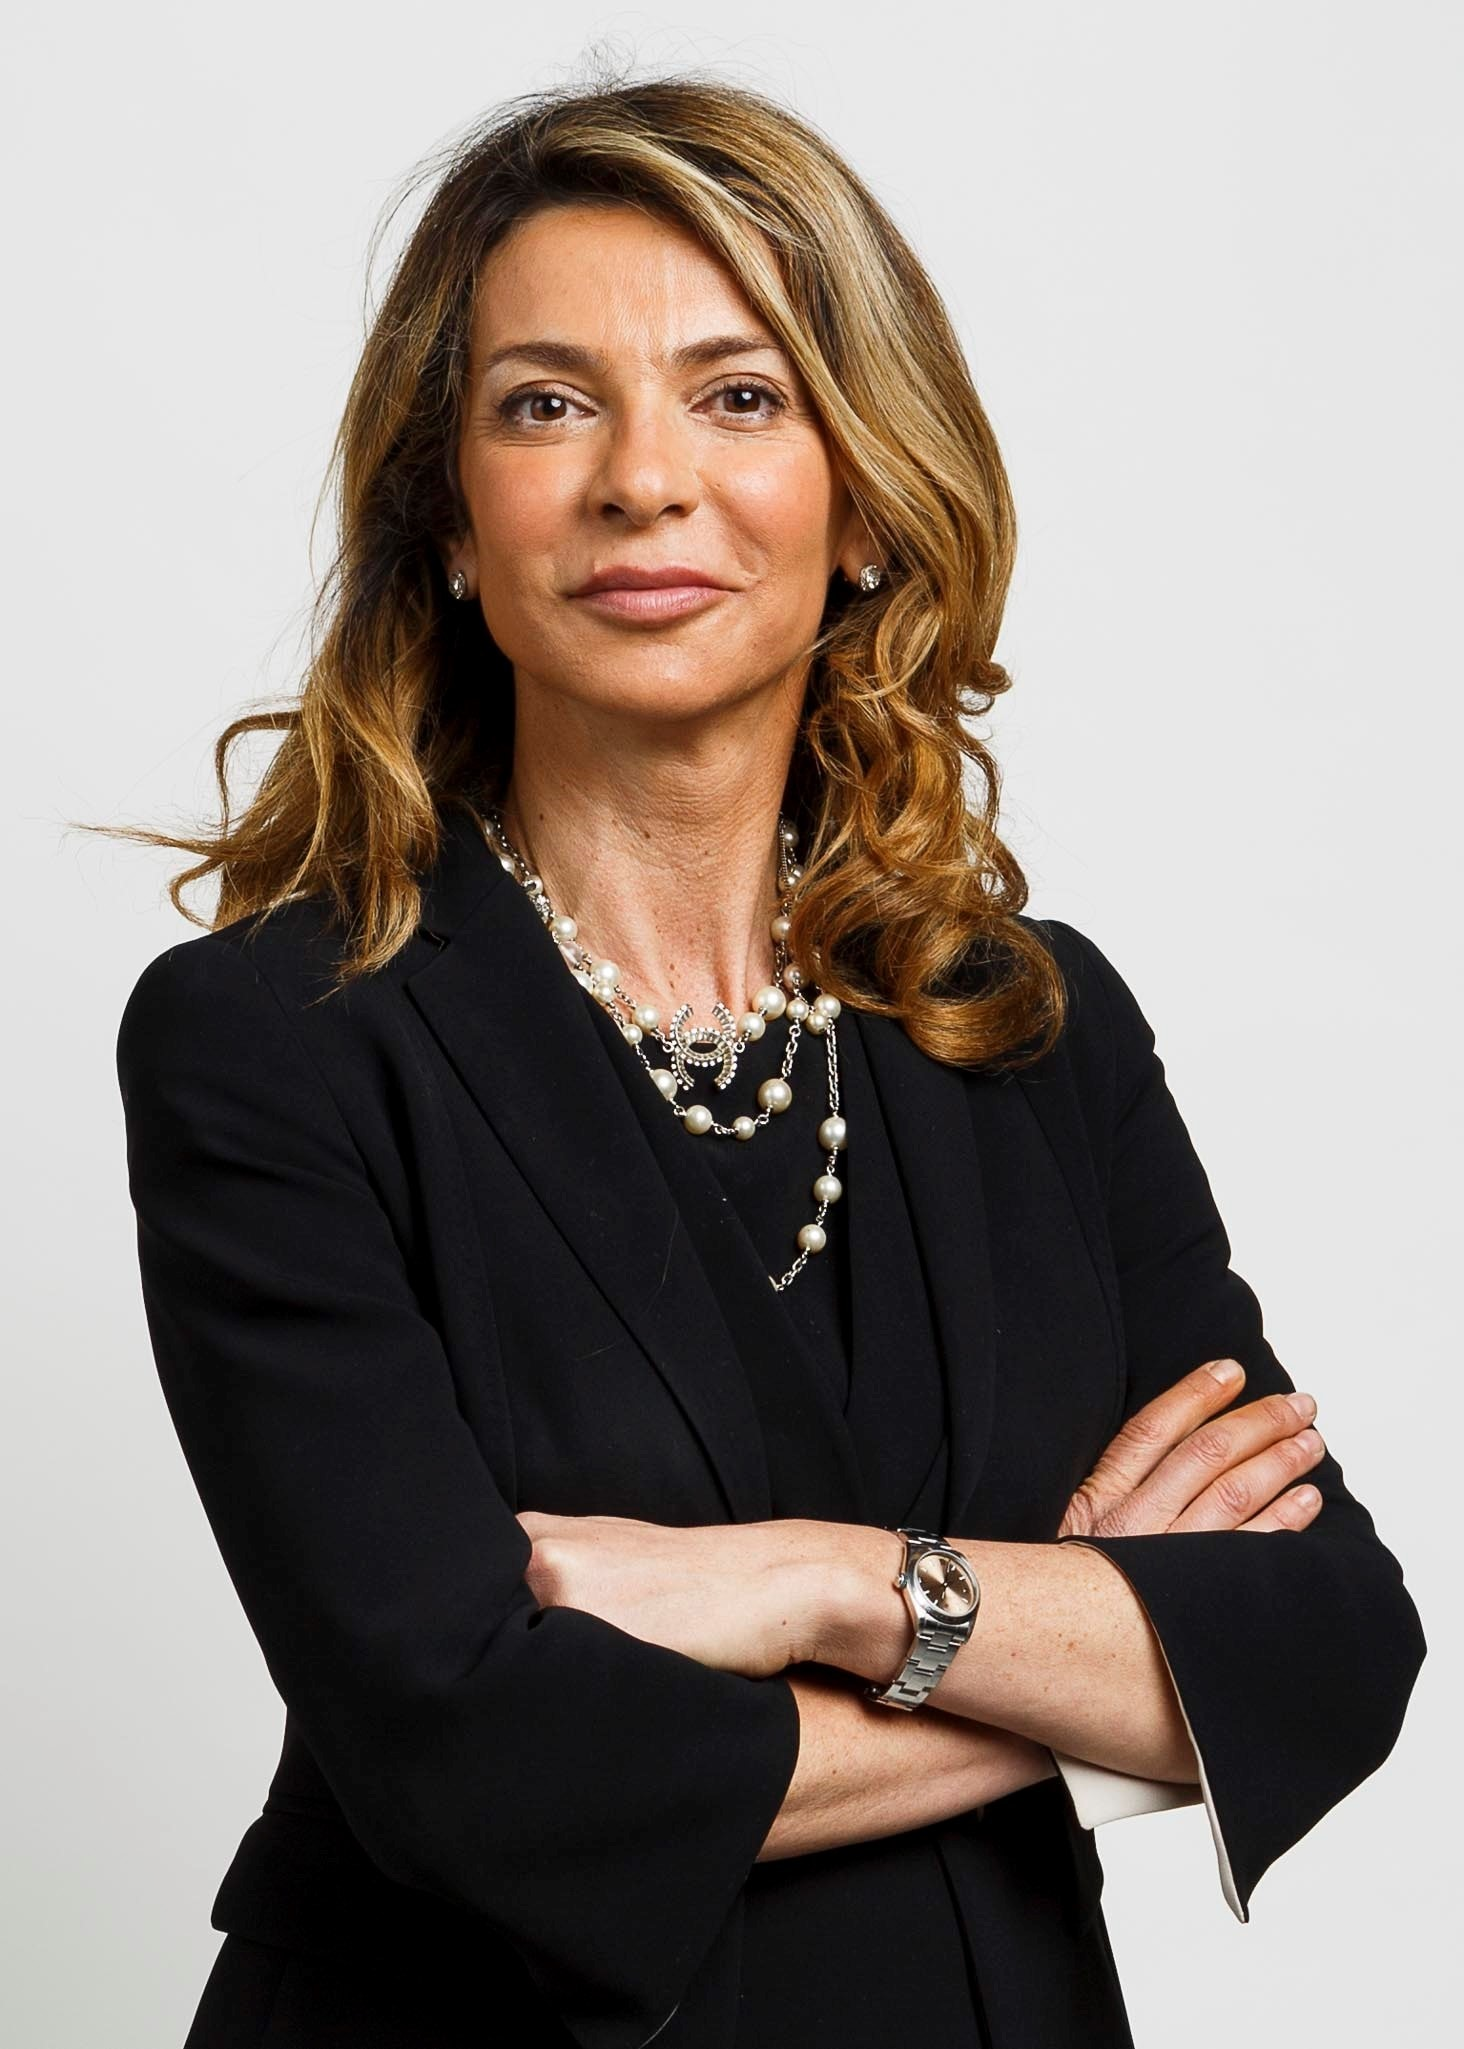 Barbara Cominelli, Direttore Commercial Operations e Digital, Vodafone Italia